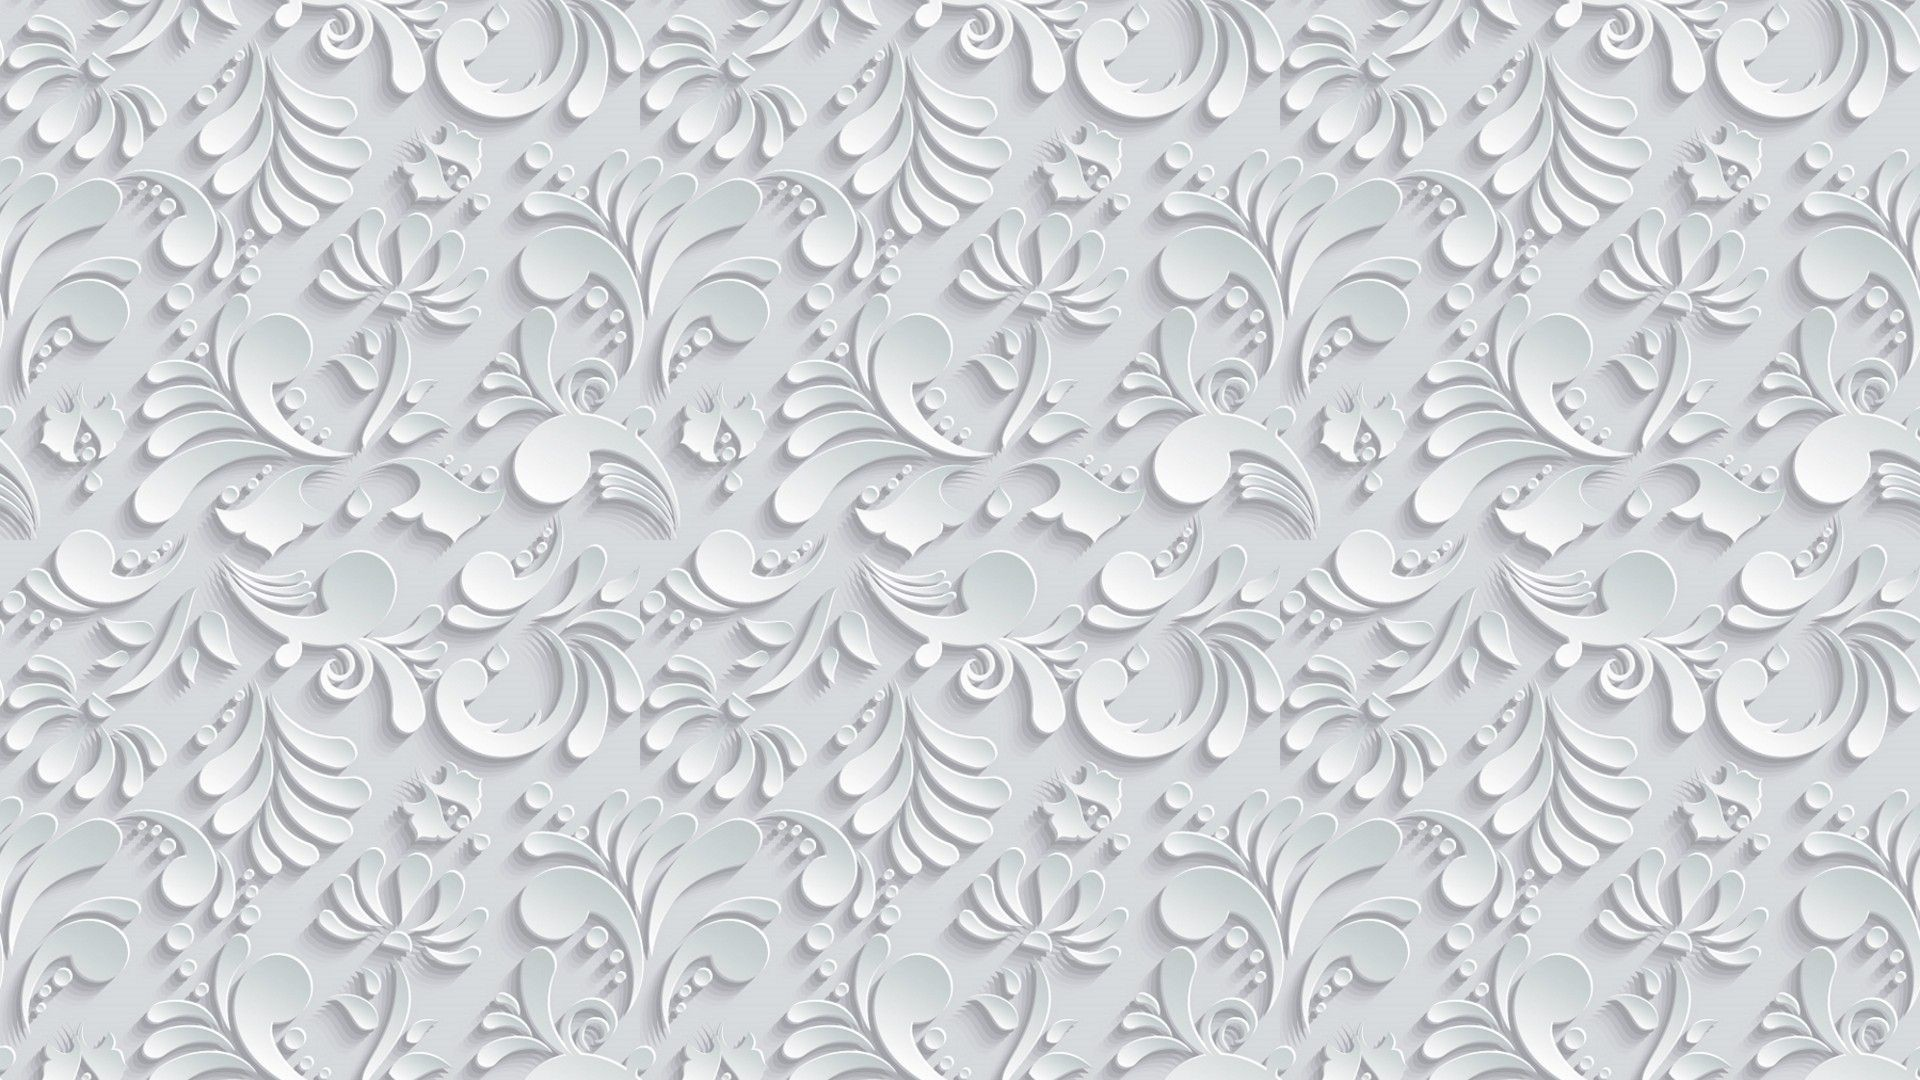 Res: 1920x1080, Vector Floral 3d Seamless Pattern on grey background wallpaper hd  widescreen high quality desktop 3d , leaves, texture, volume, drop shadow,  flower,